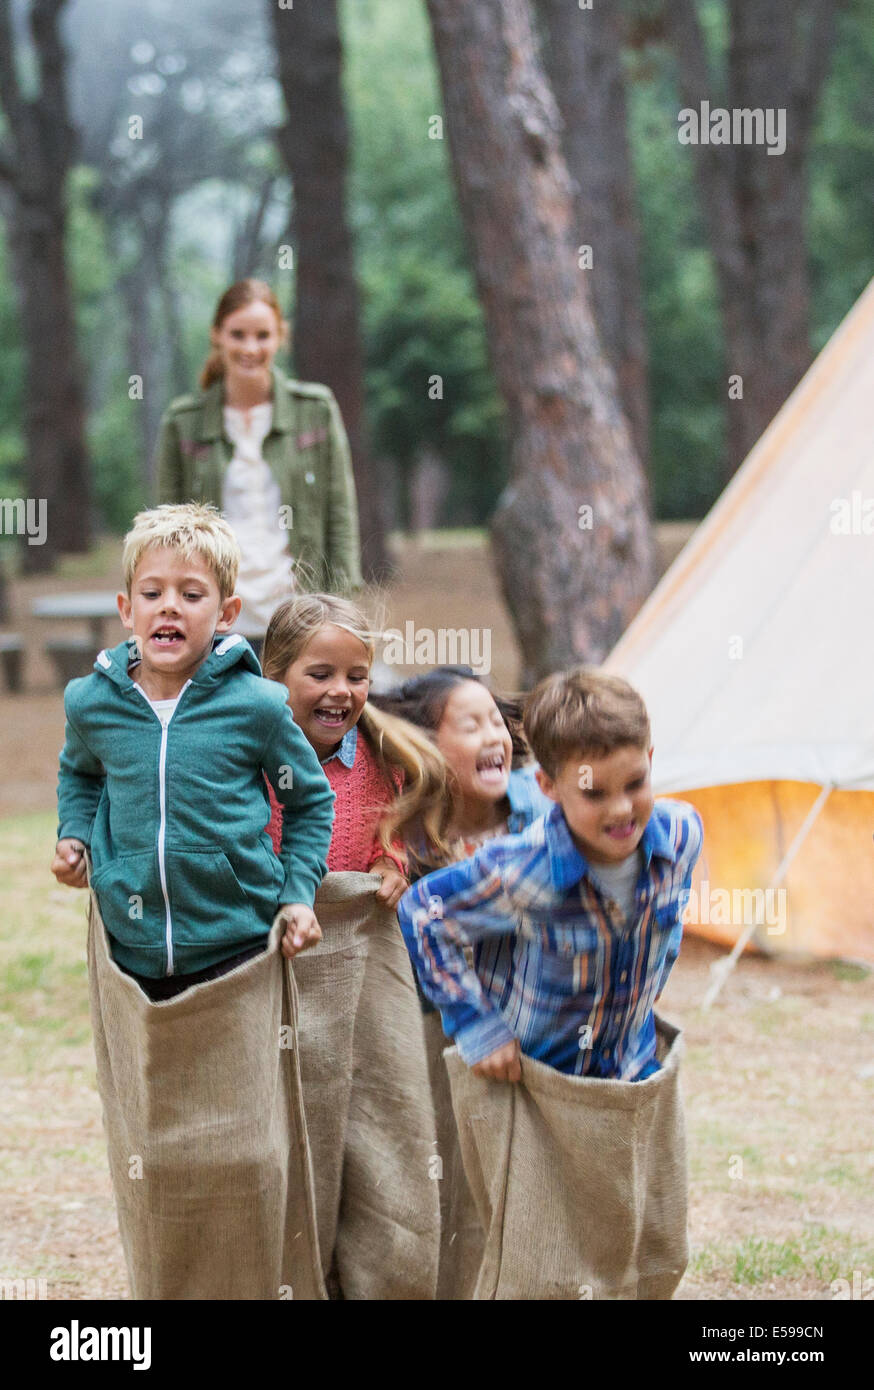 Sac à course enfants camping Photo Stock